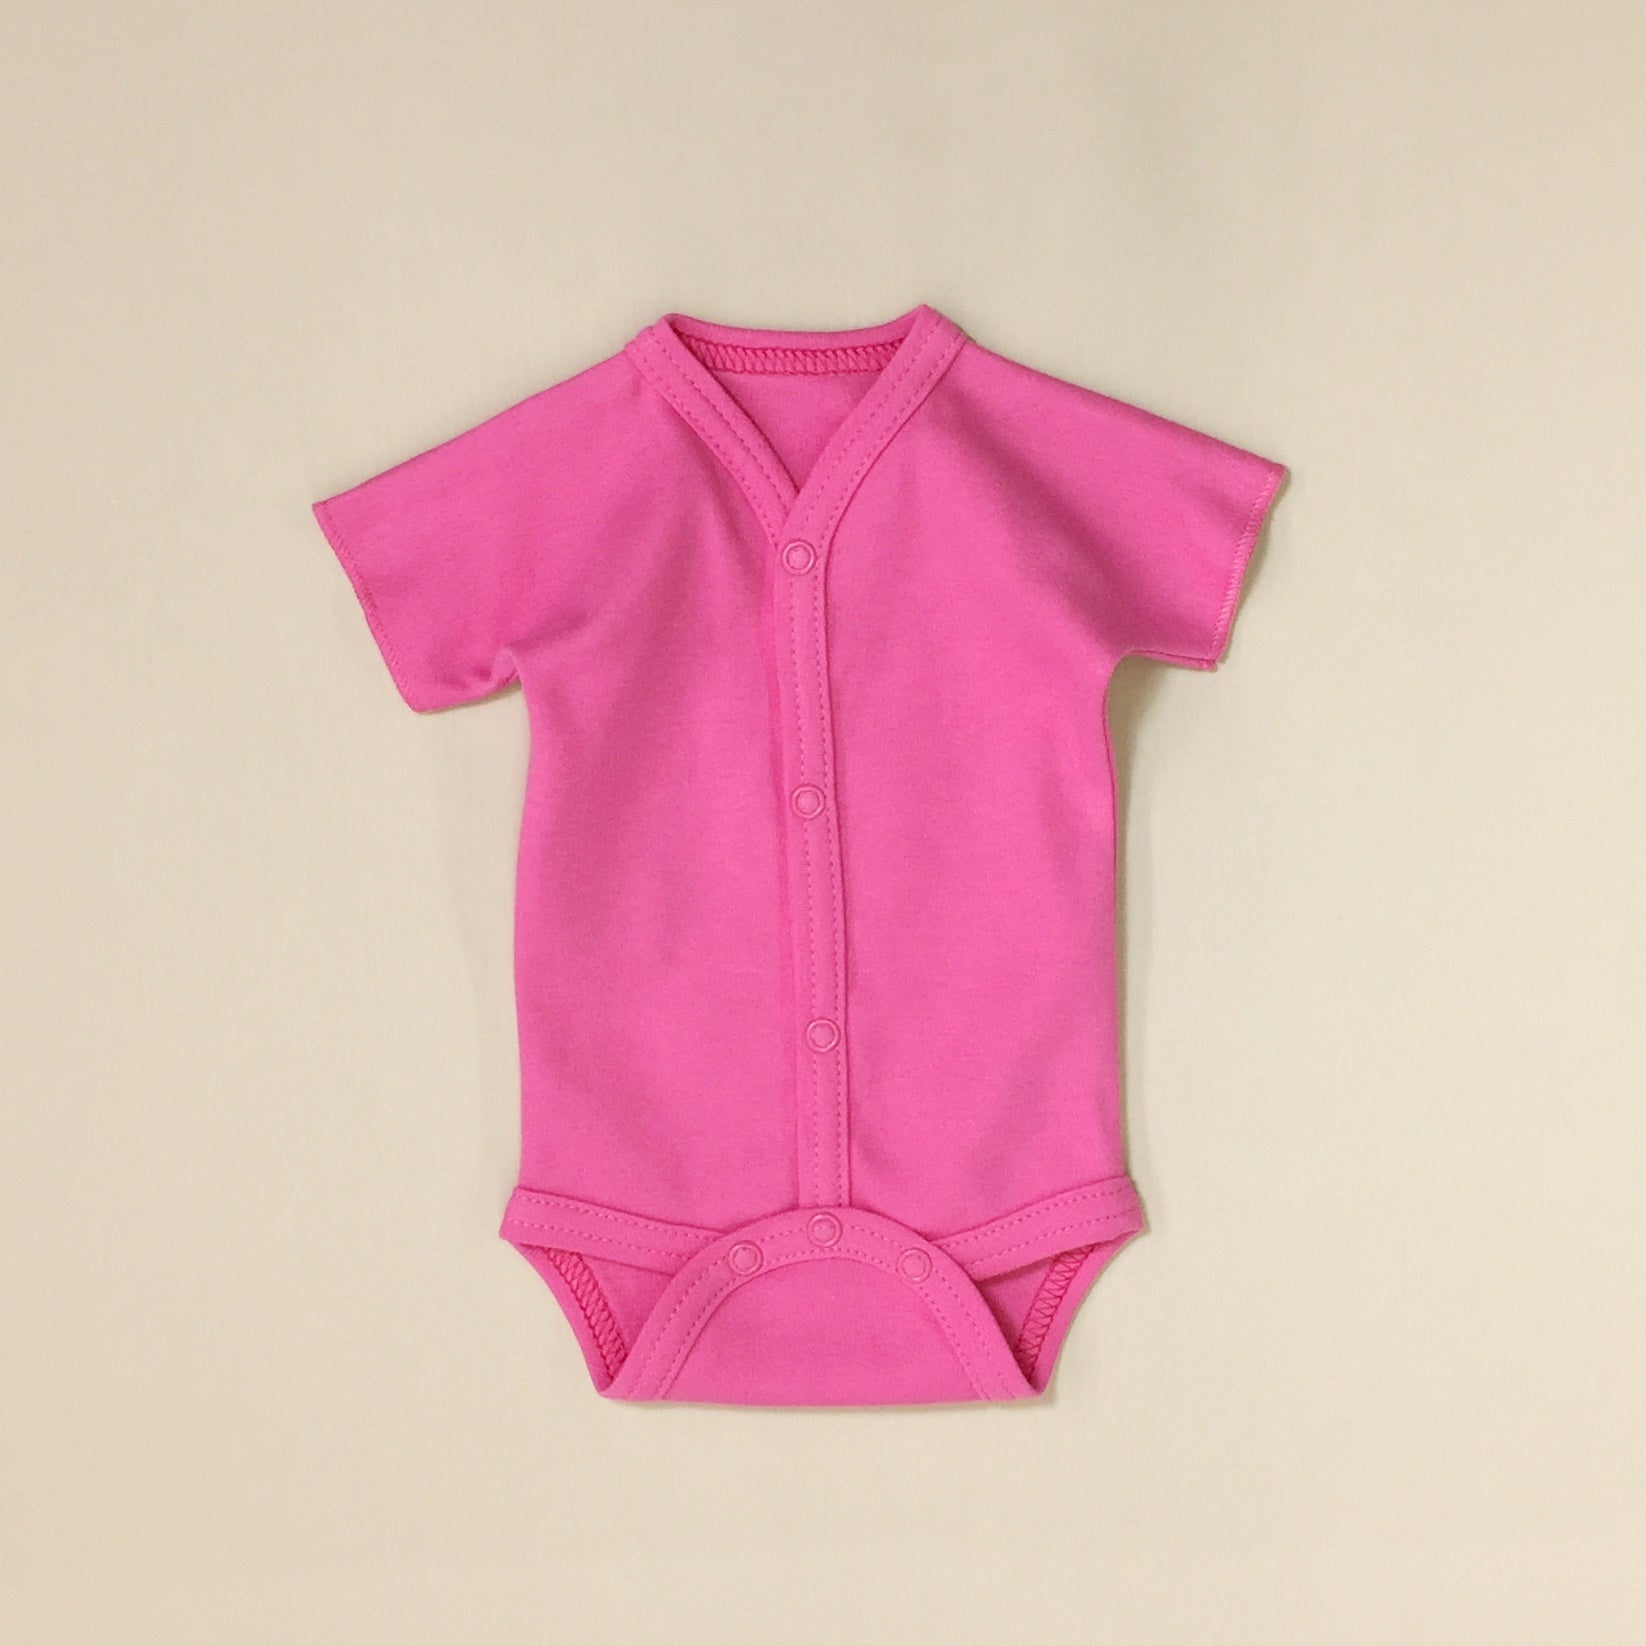 Princess Garden Snap Bodysuit 3 Pack